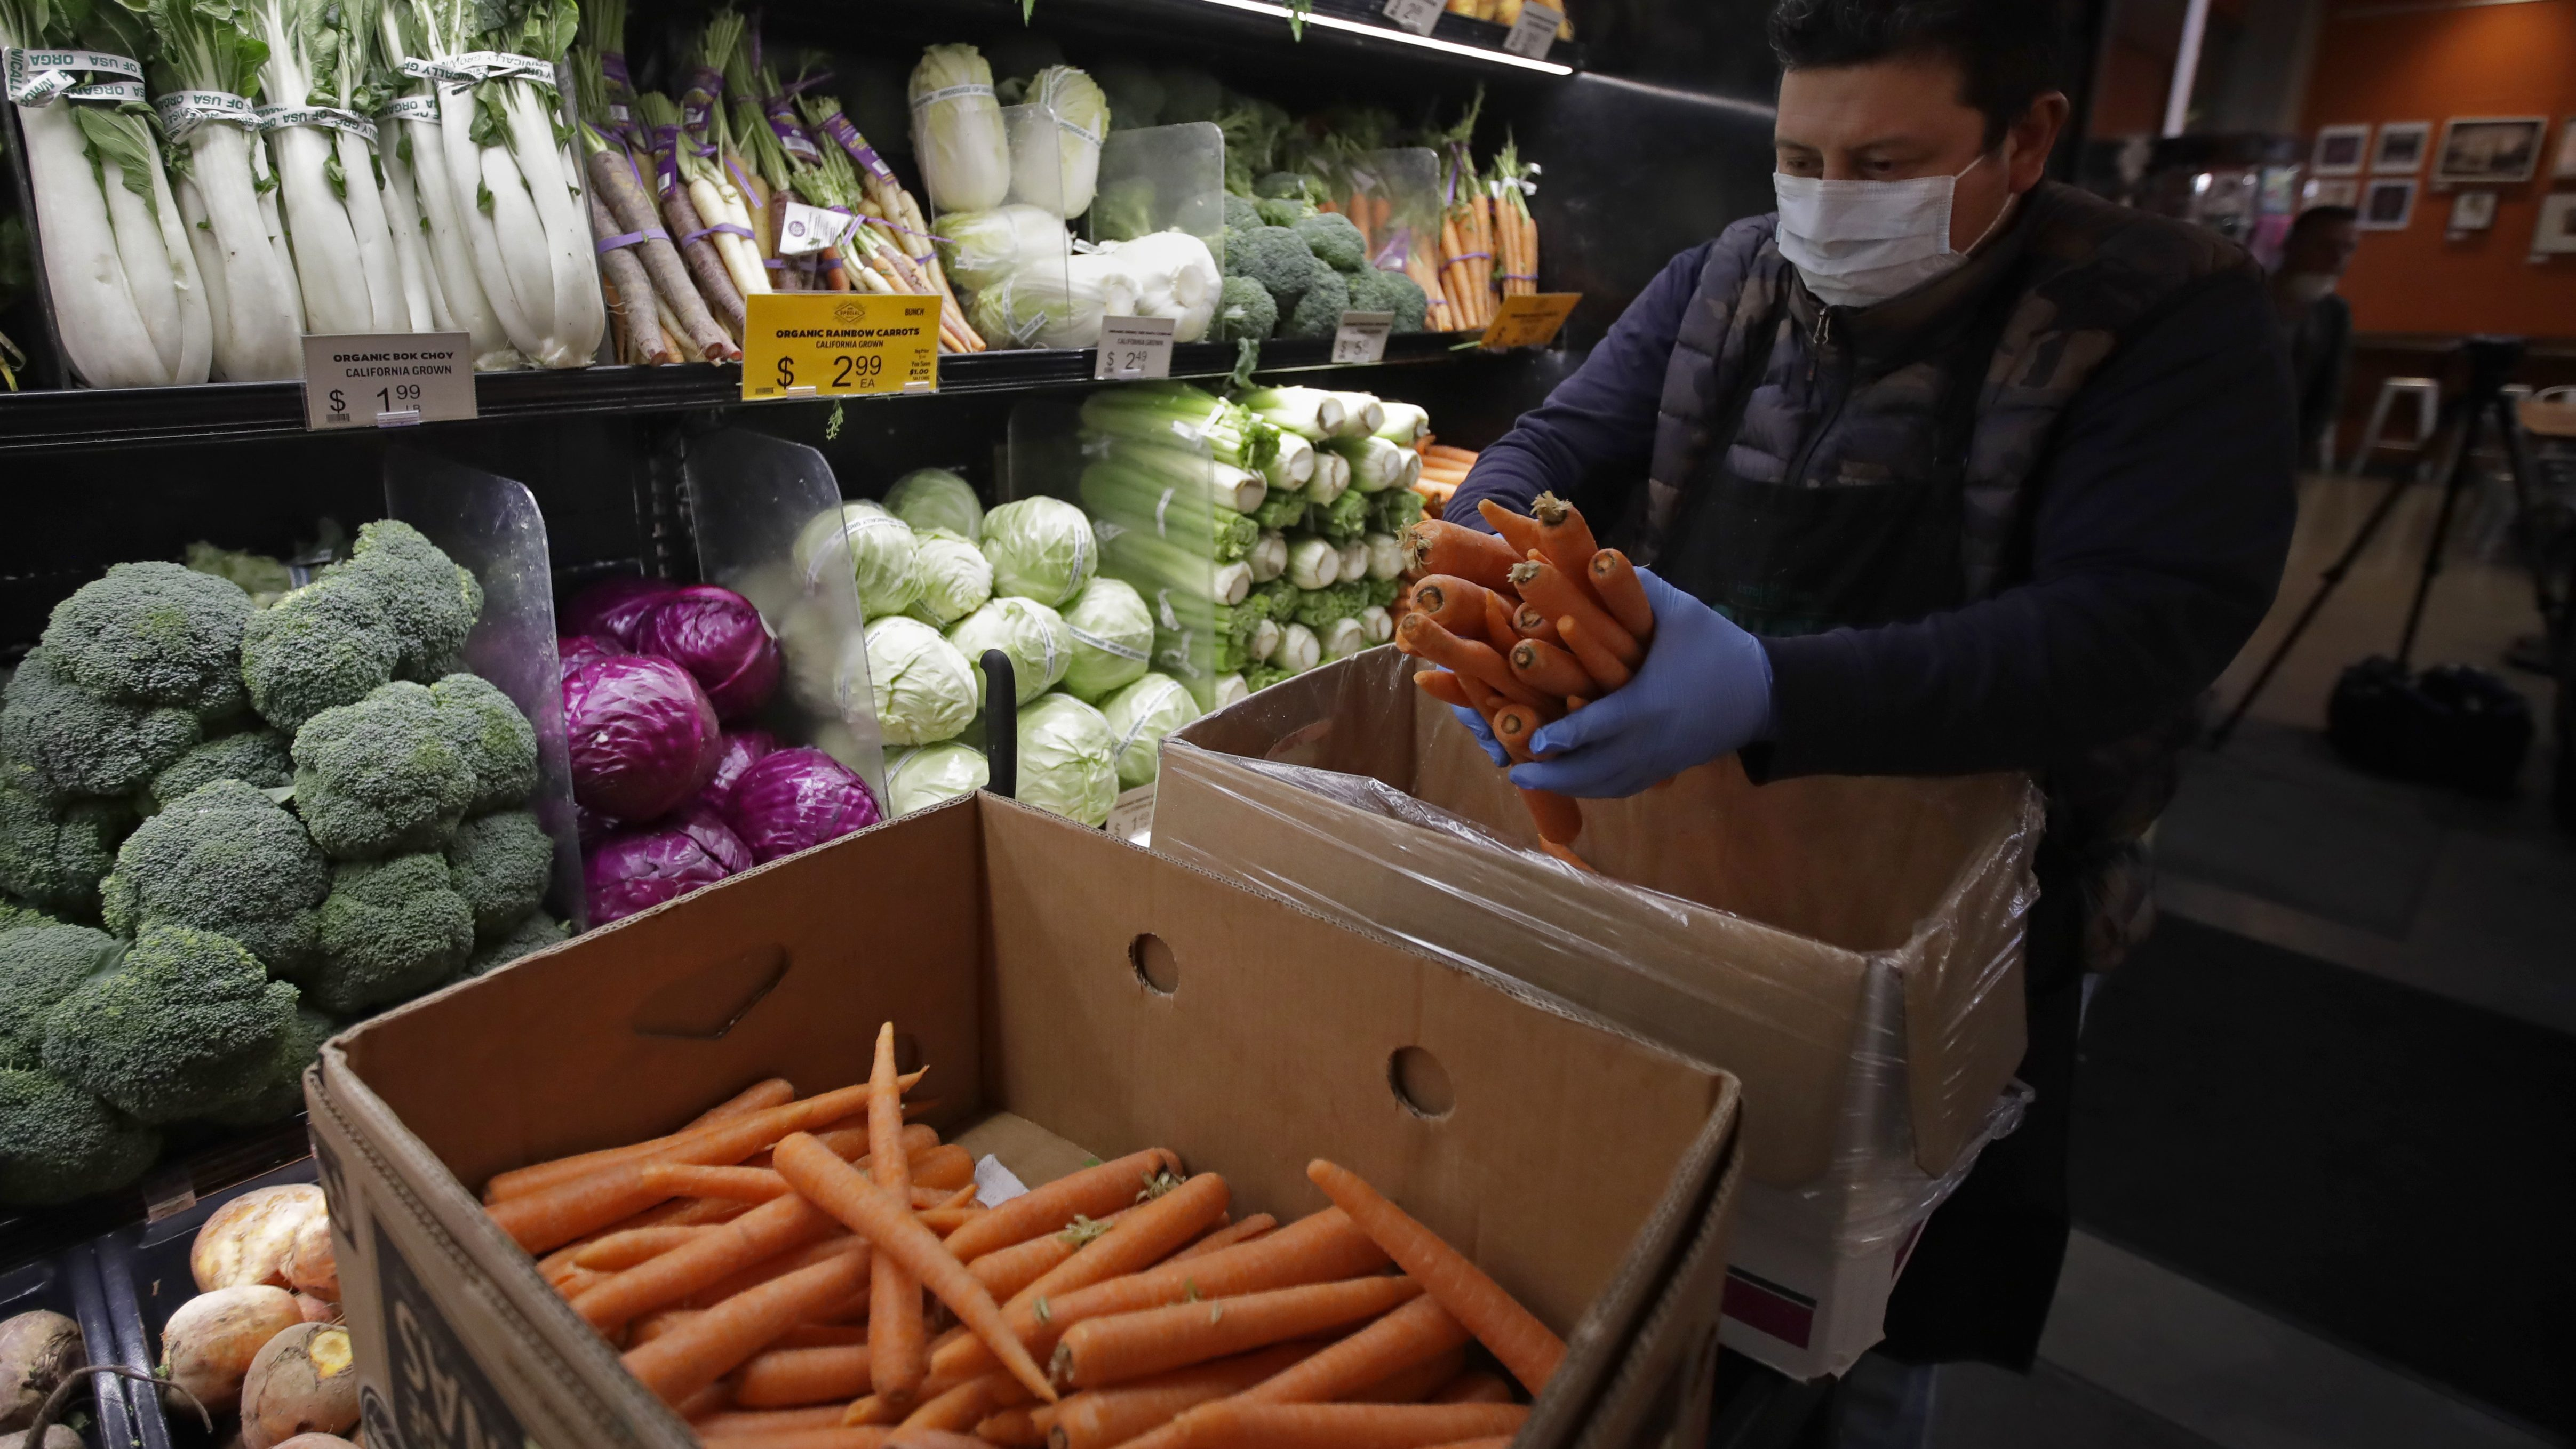 A worker, wearing a protective mask against the coronavirus, stocks produce.